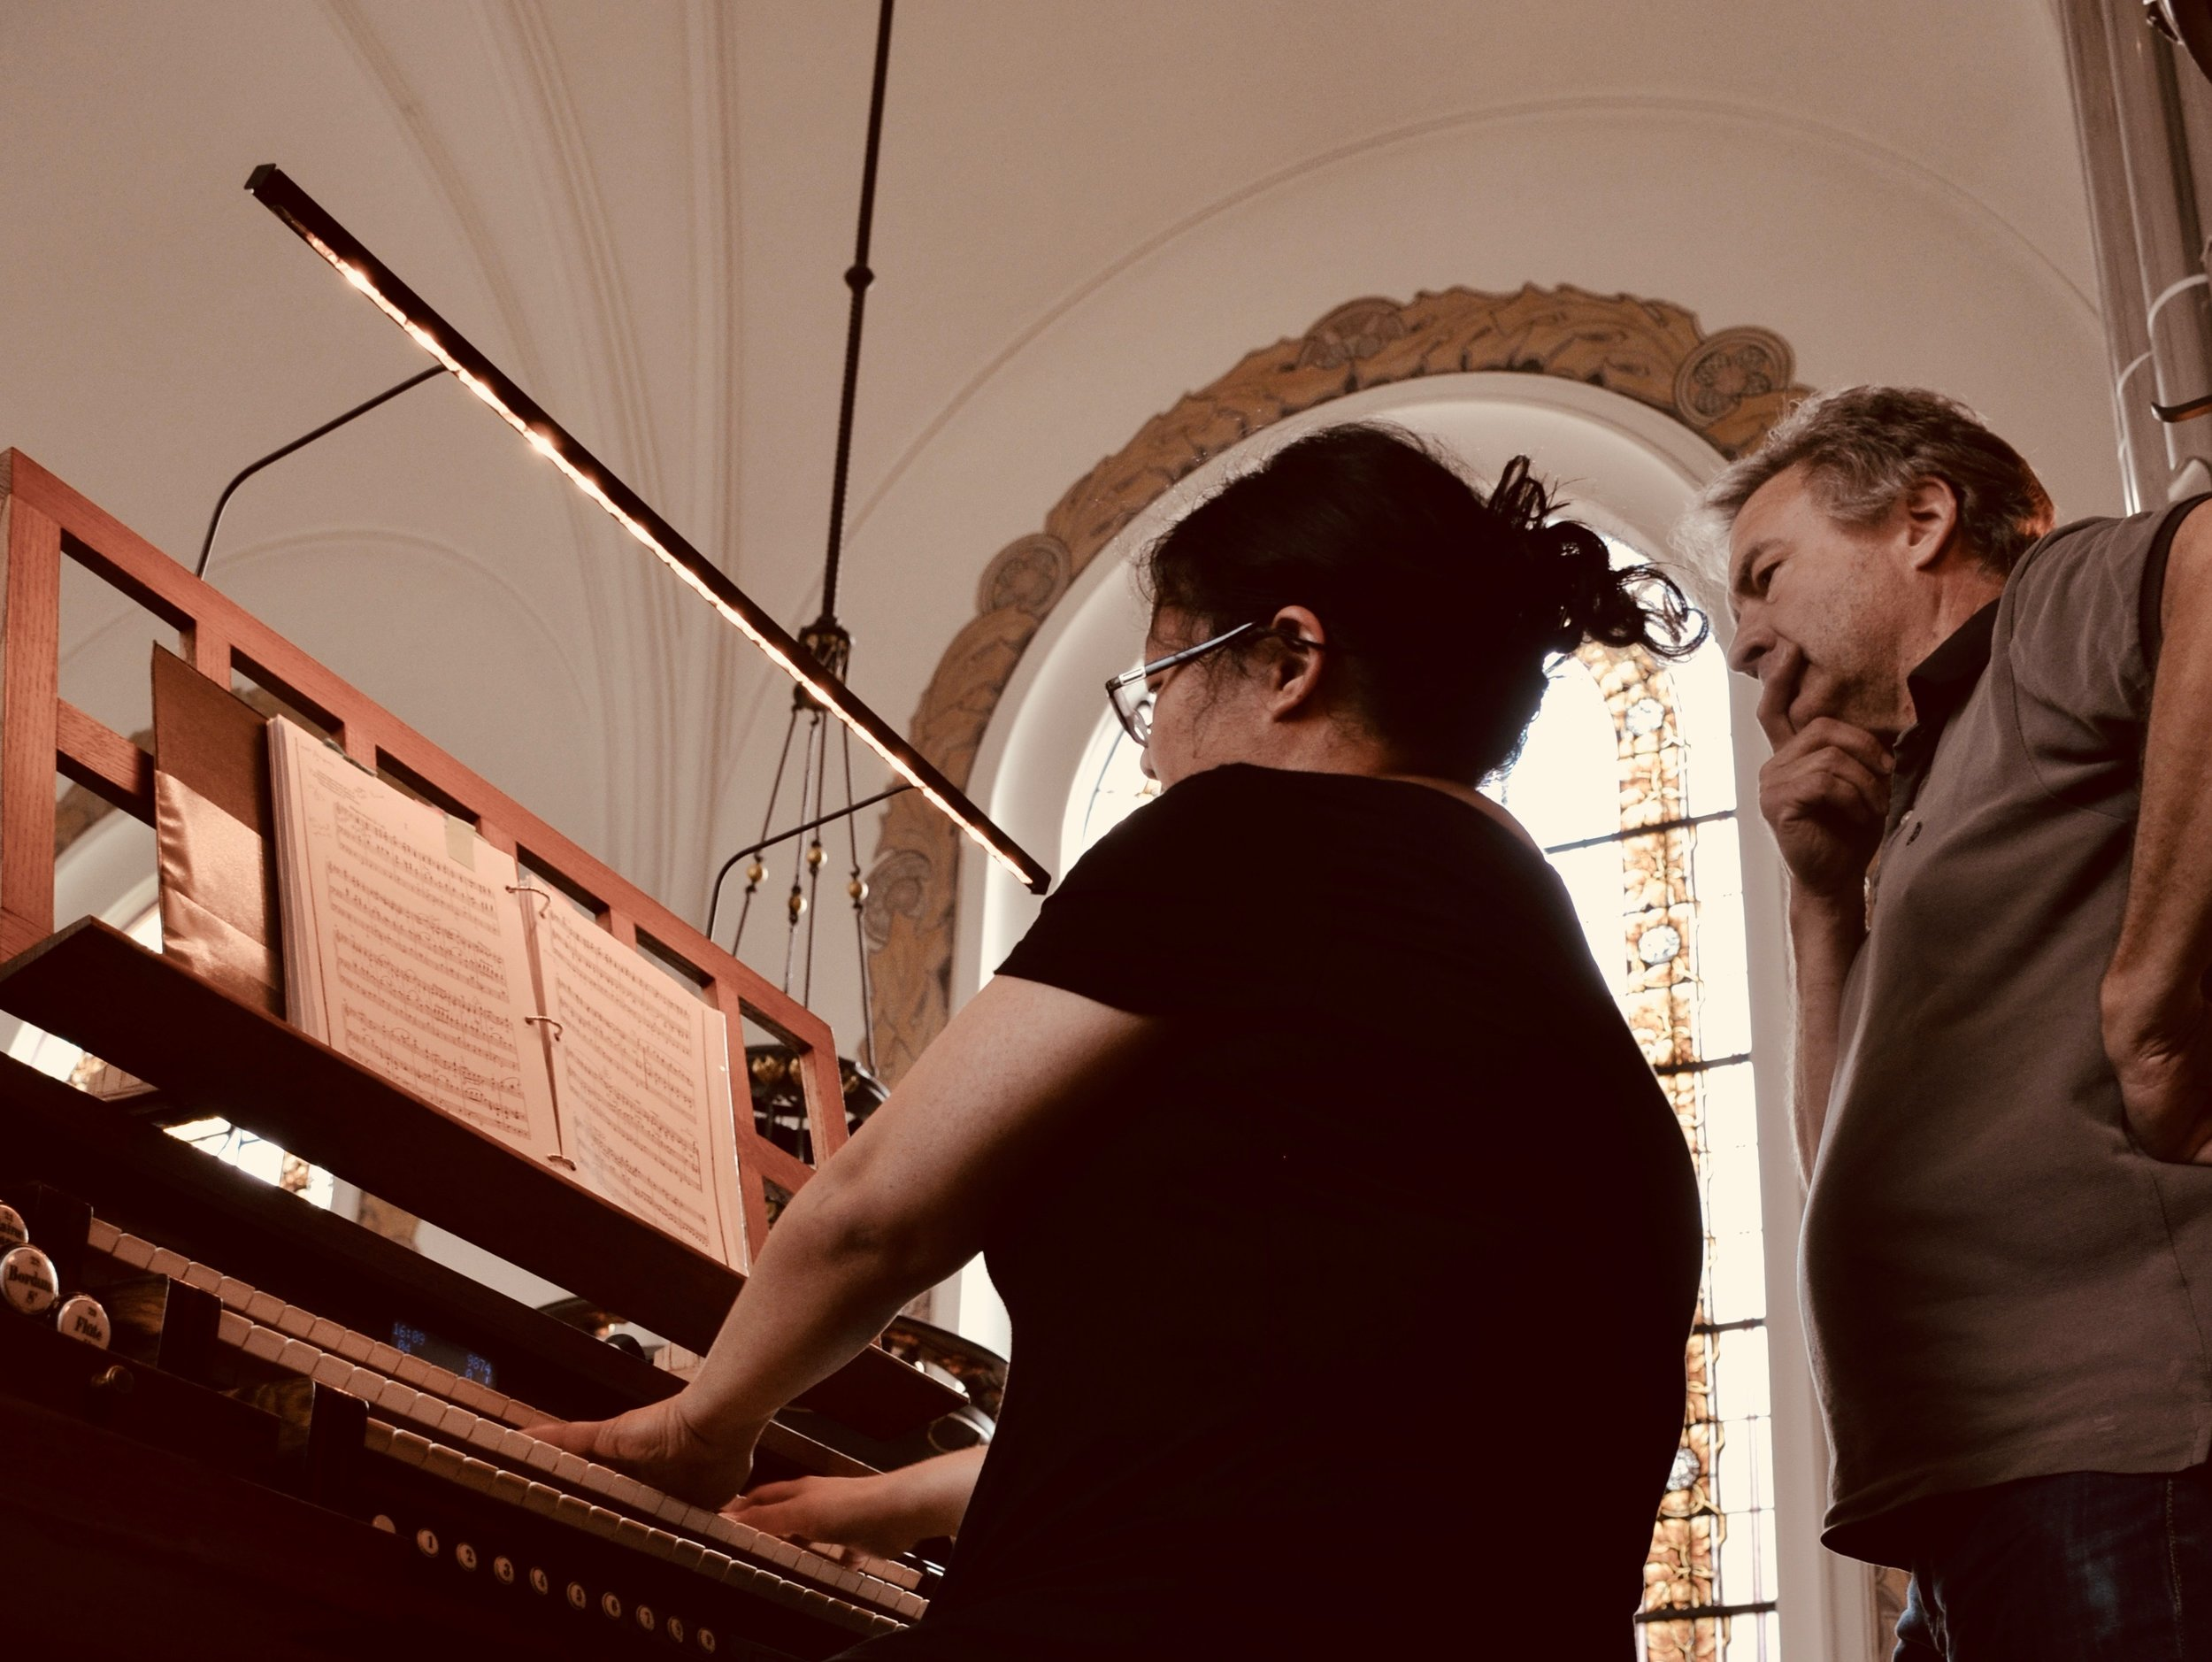 Jennifer Hsiao plays the 1907 Åckerman & Lund organ in S:t Johannes kyrka, Malmö, Sweden.